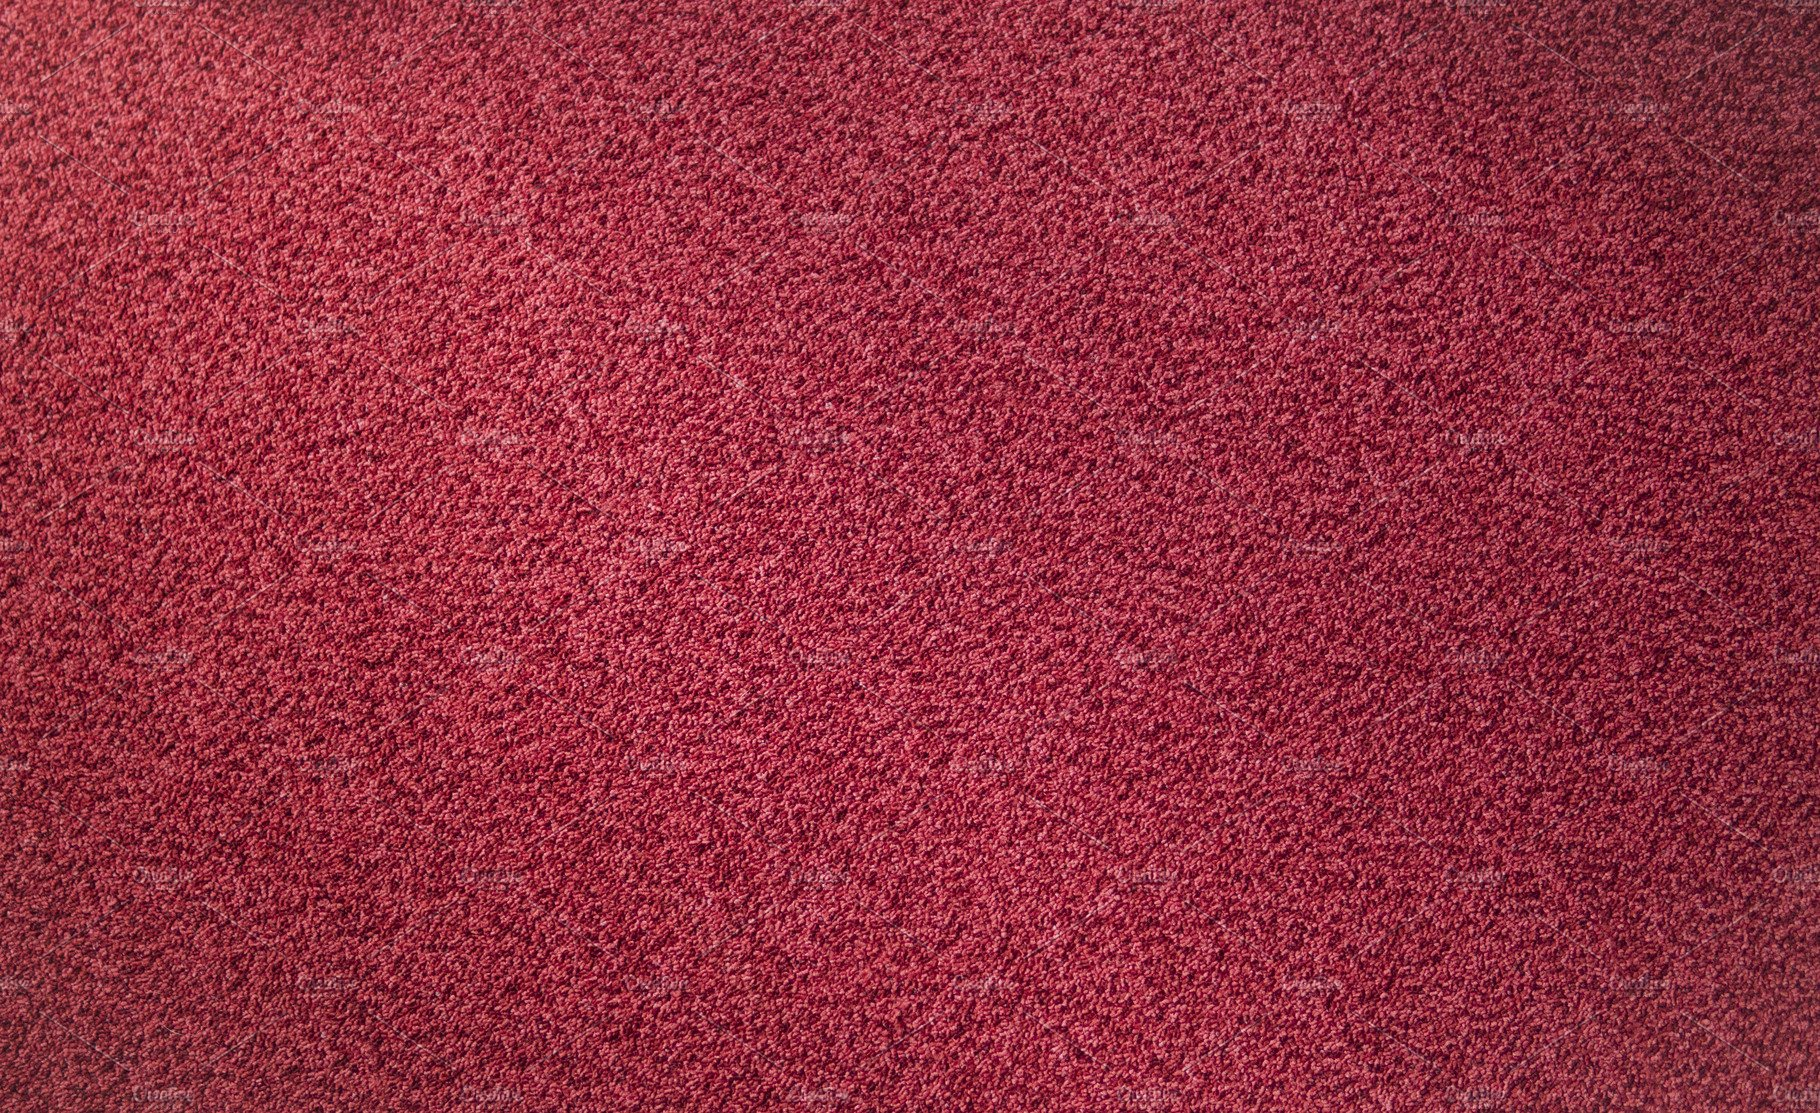 Red carpet texture. Indoor carpeting ~ Abstract Photos ...  Red Carpet Texture Pattern